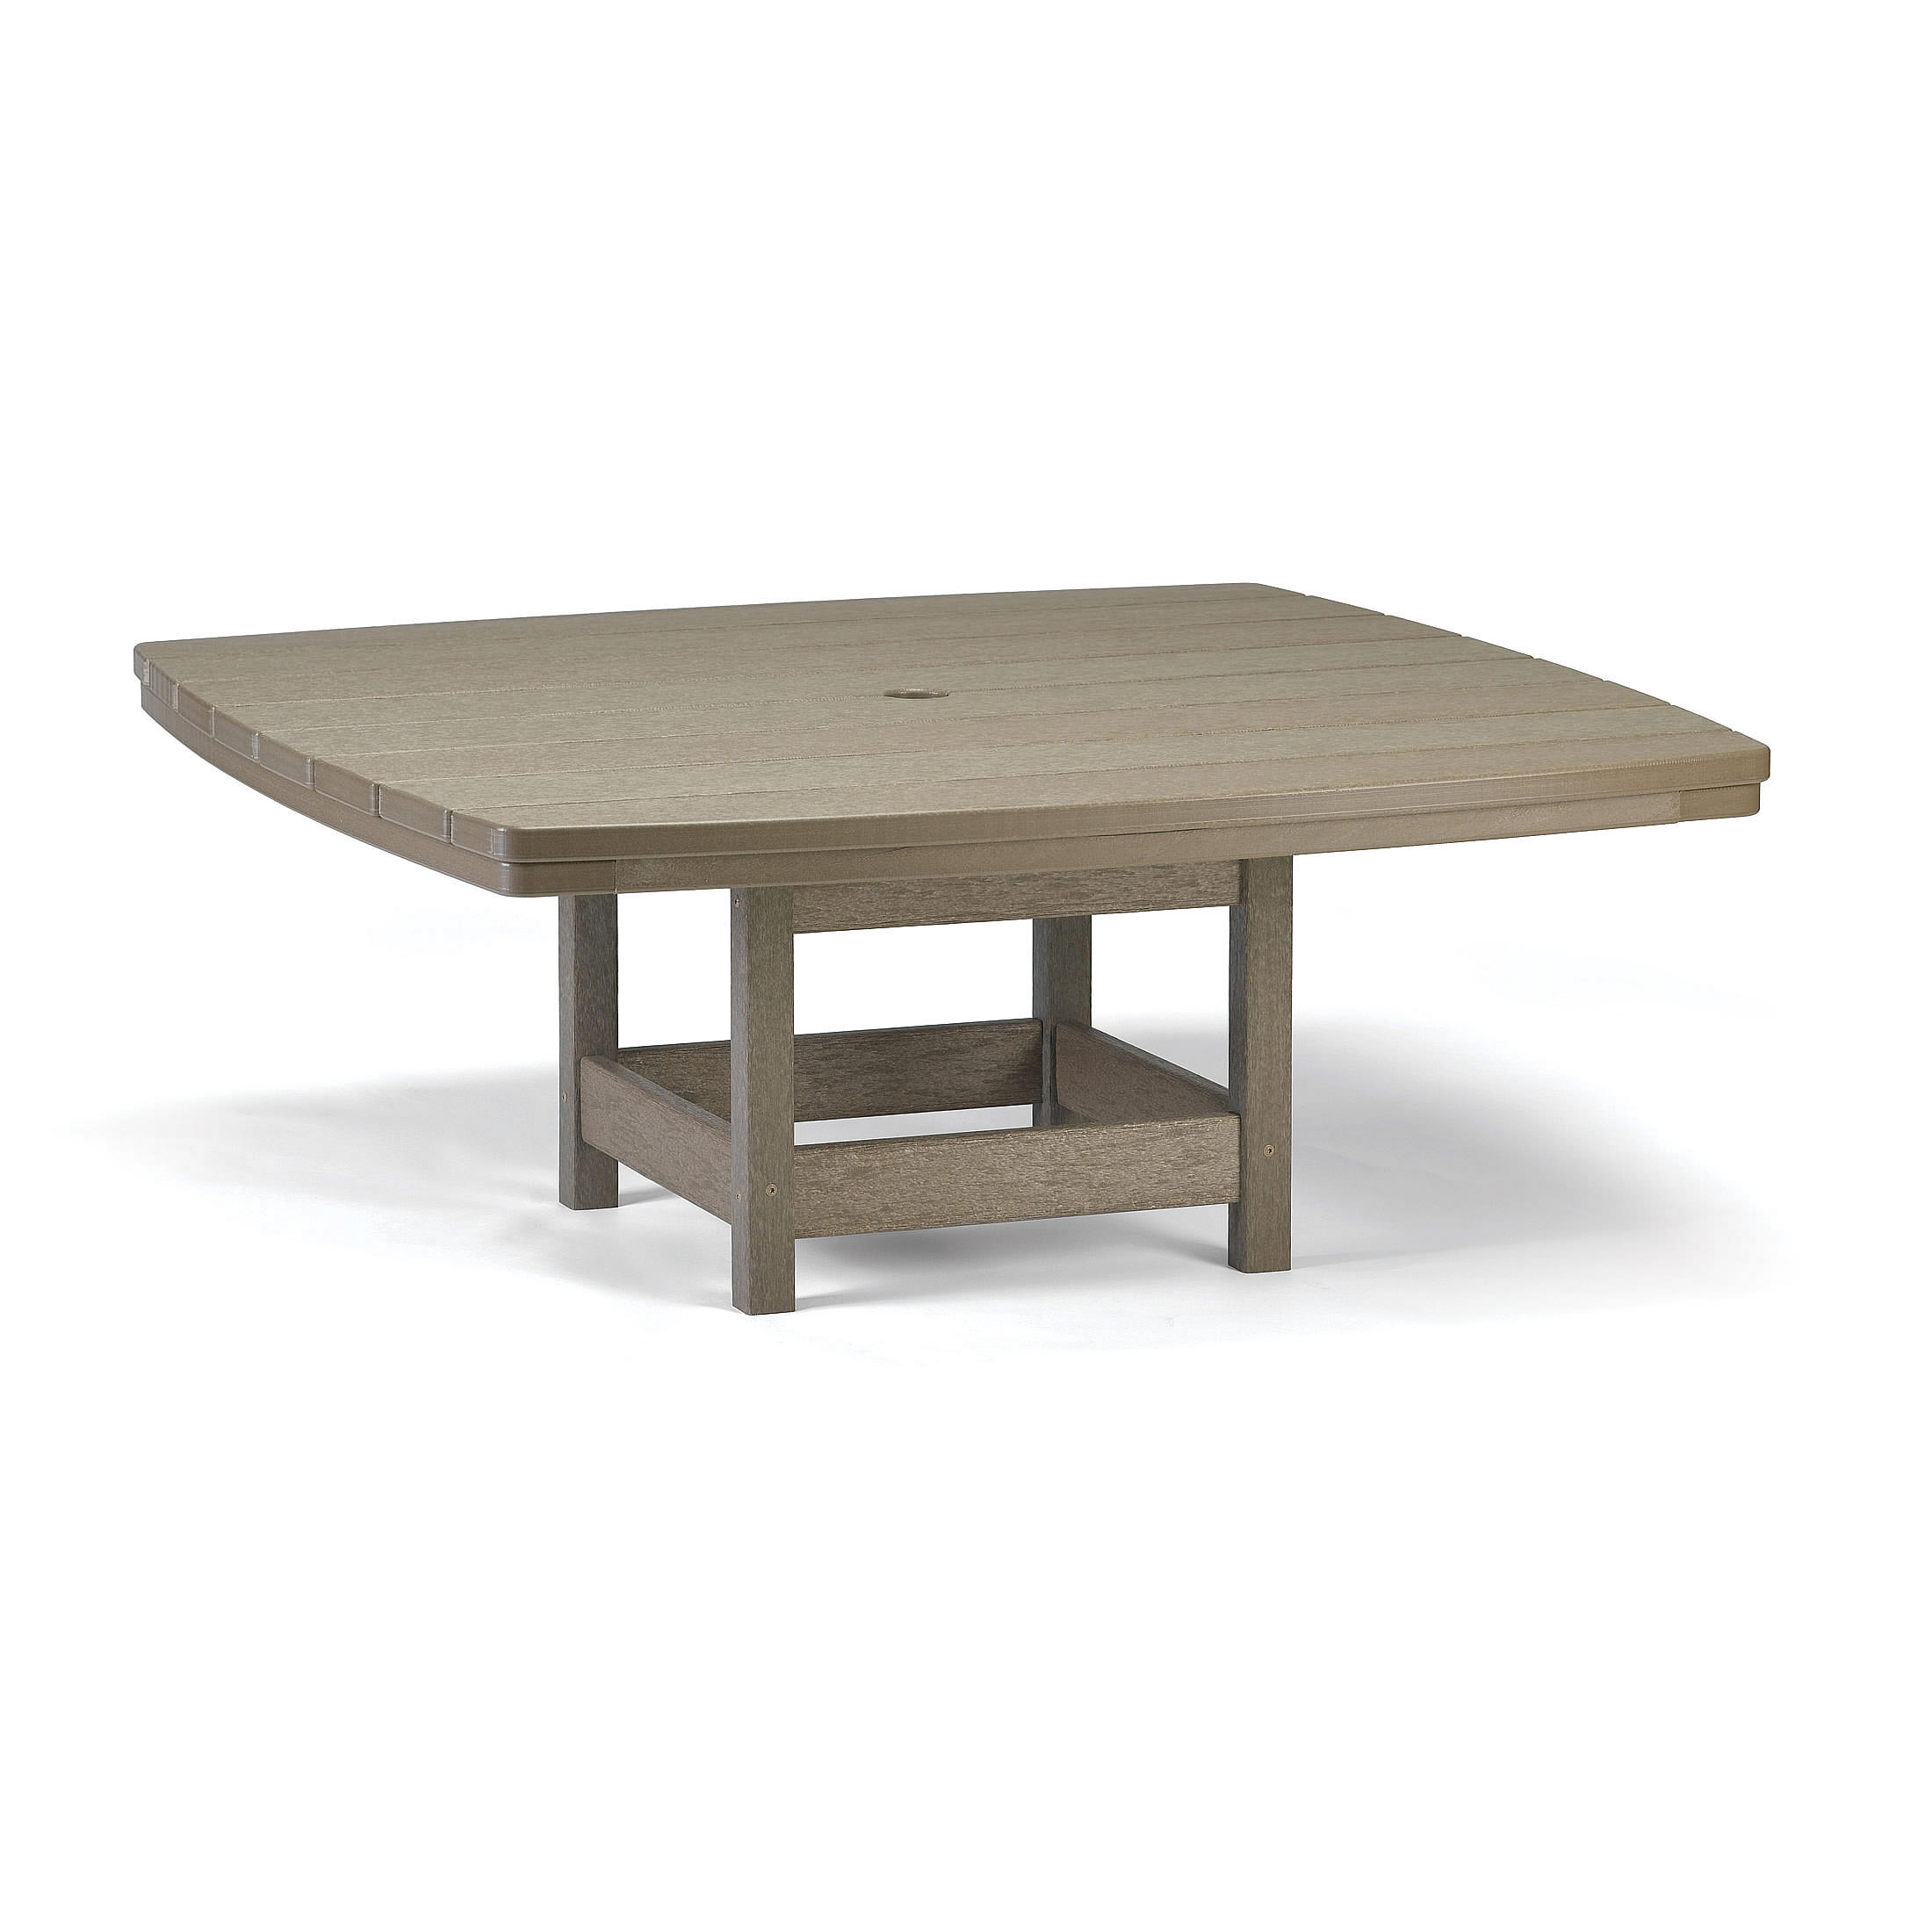 Breezesta™ 42 x 42 Inch Square Conversation Table